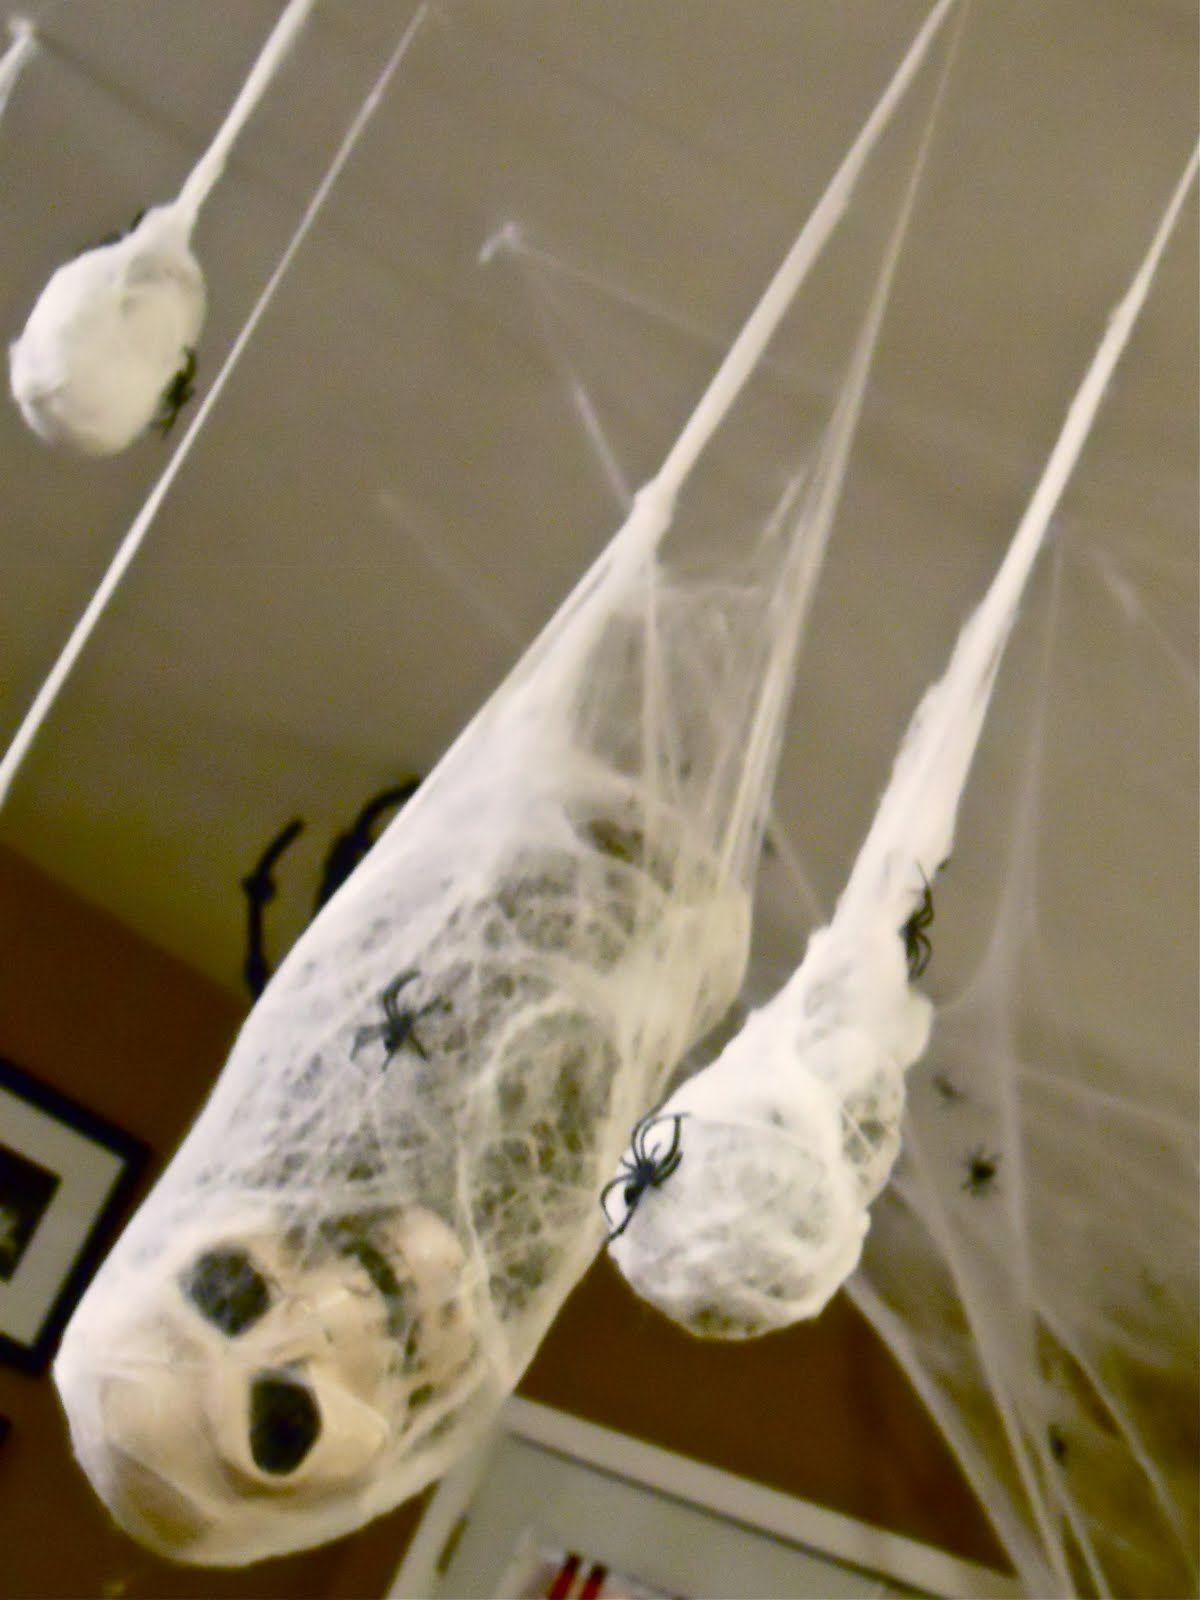 home decorating trends homedit - Diy Spooky Halloween Decorations